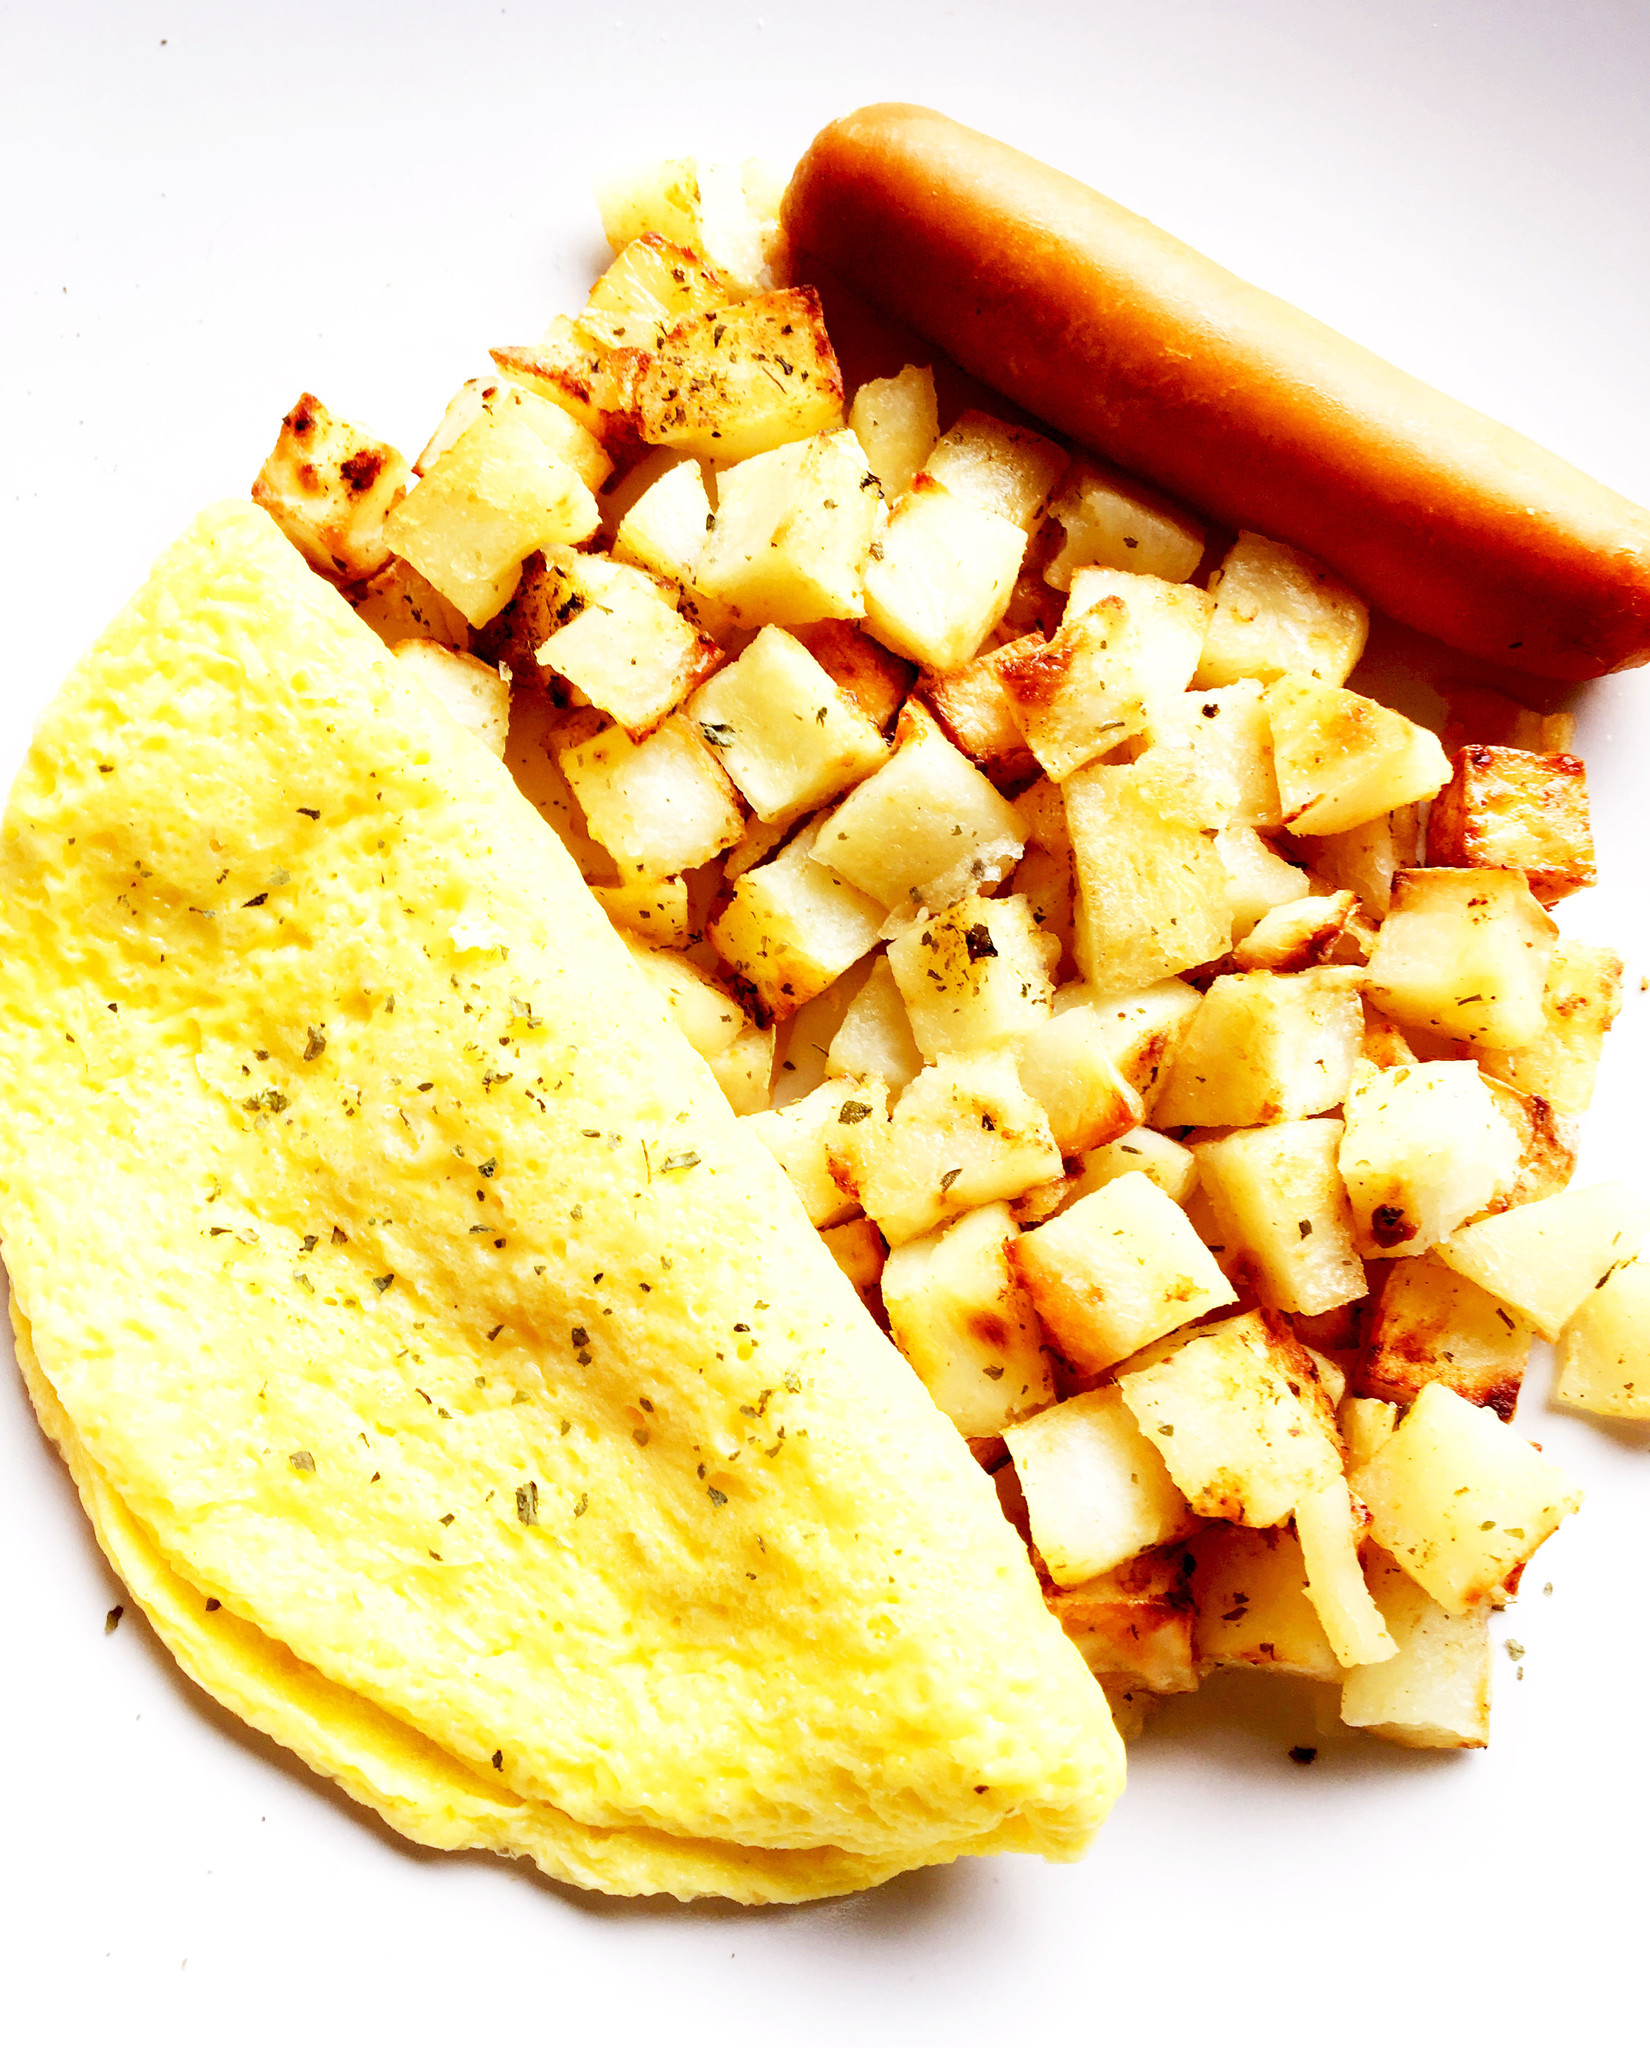 Cheese omelette, sausage & homemade potatoes